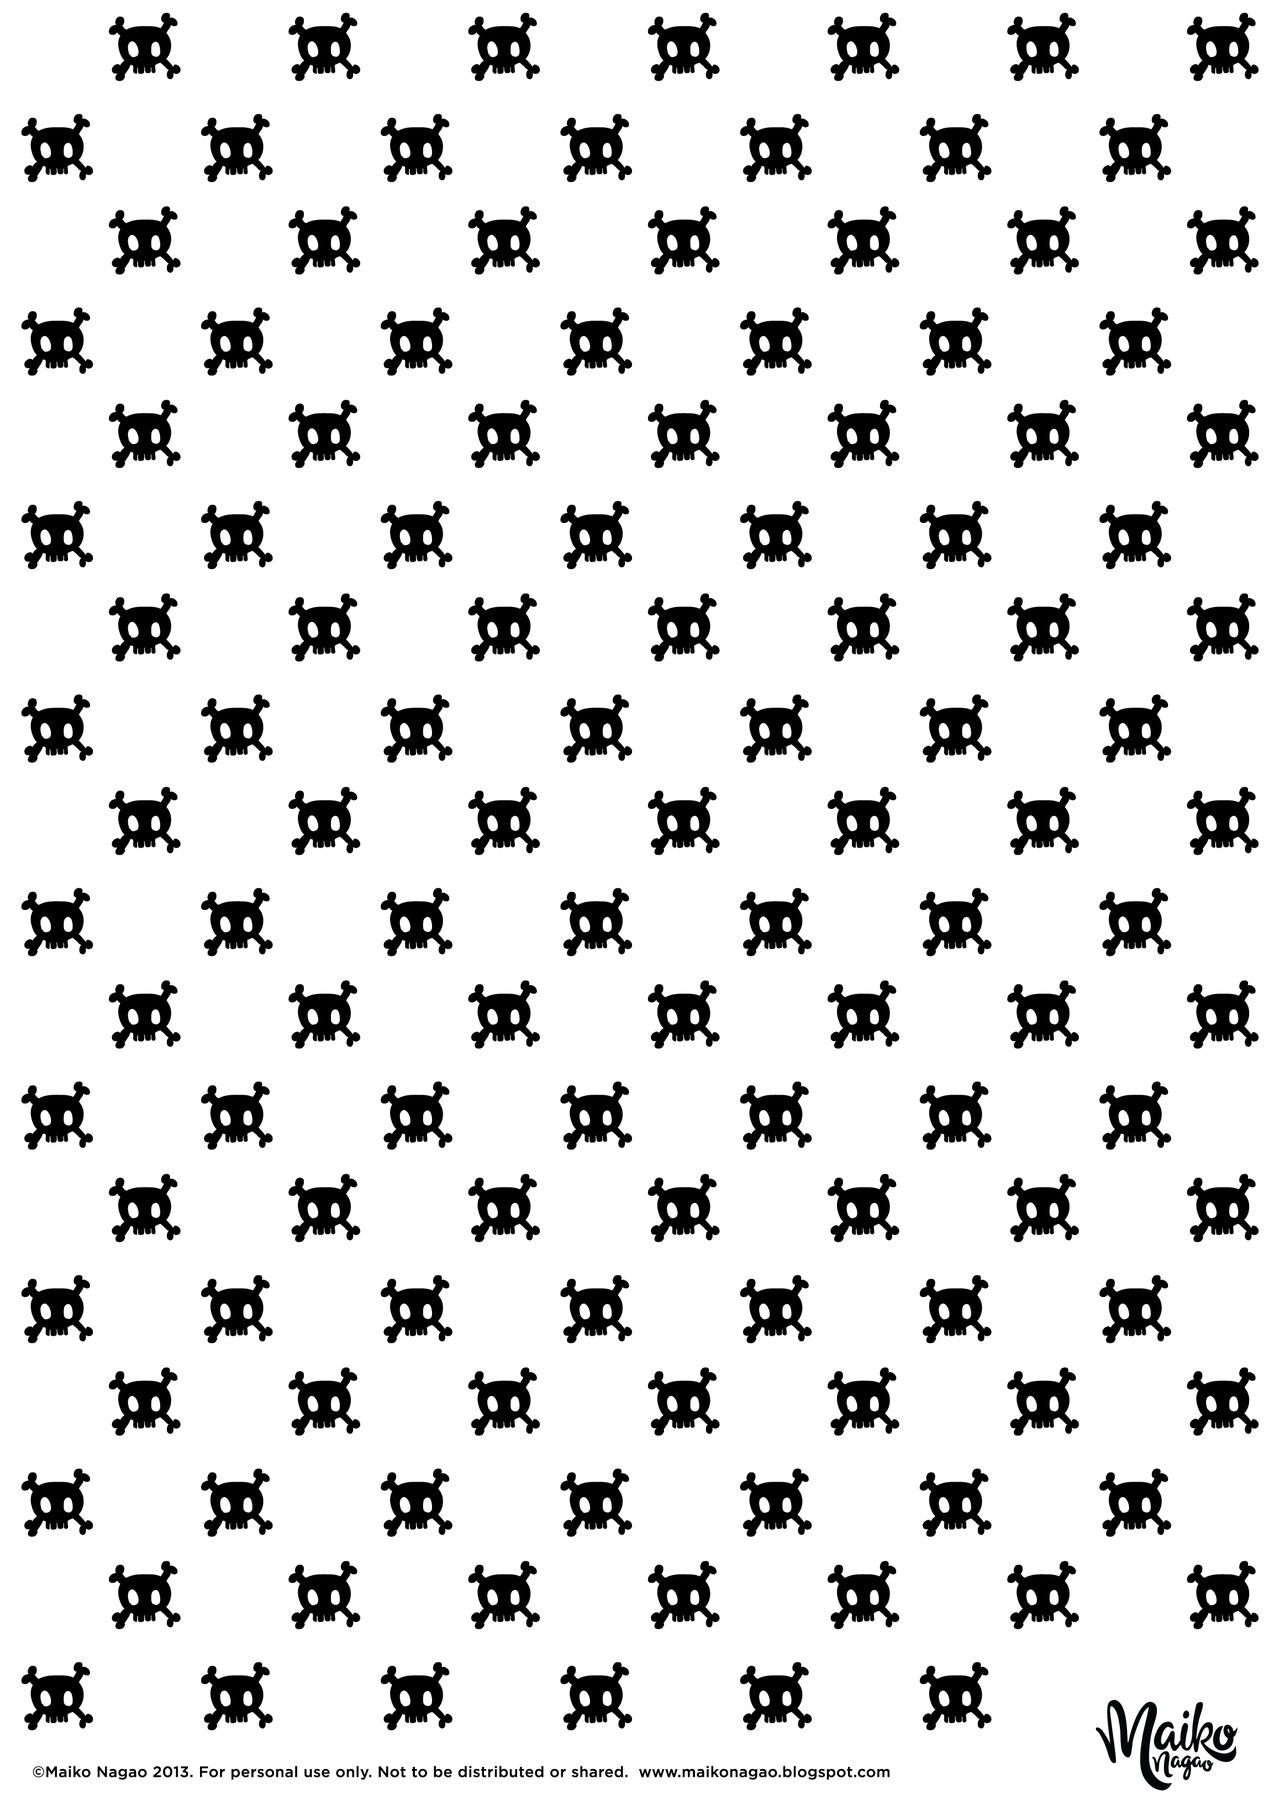 free printable birthday wrapping paper ; printable-gift-wrapping-paper-skull-maiko-nagao